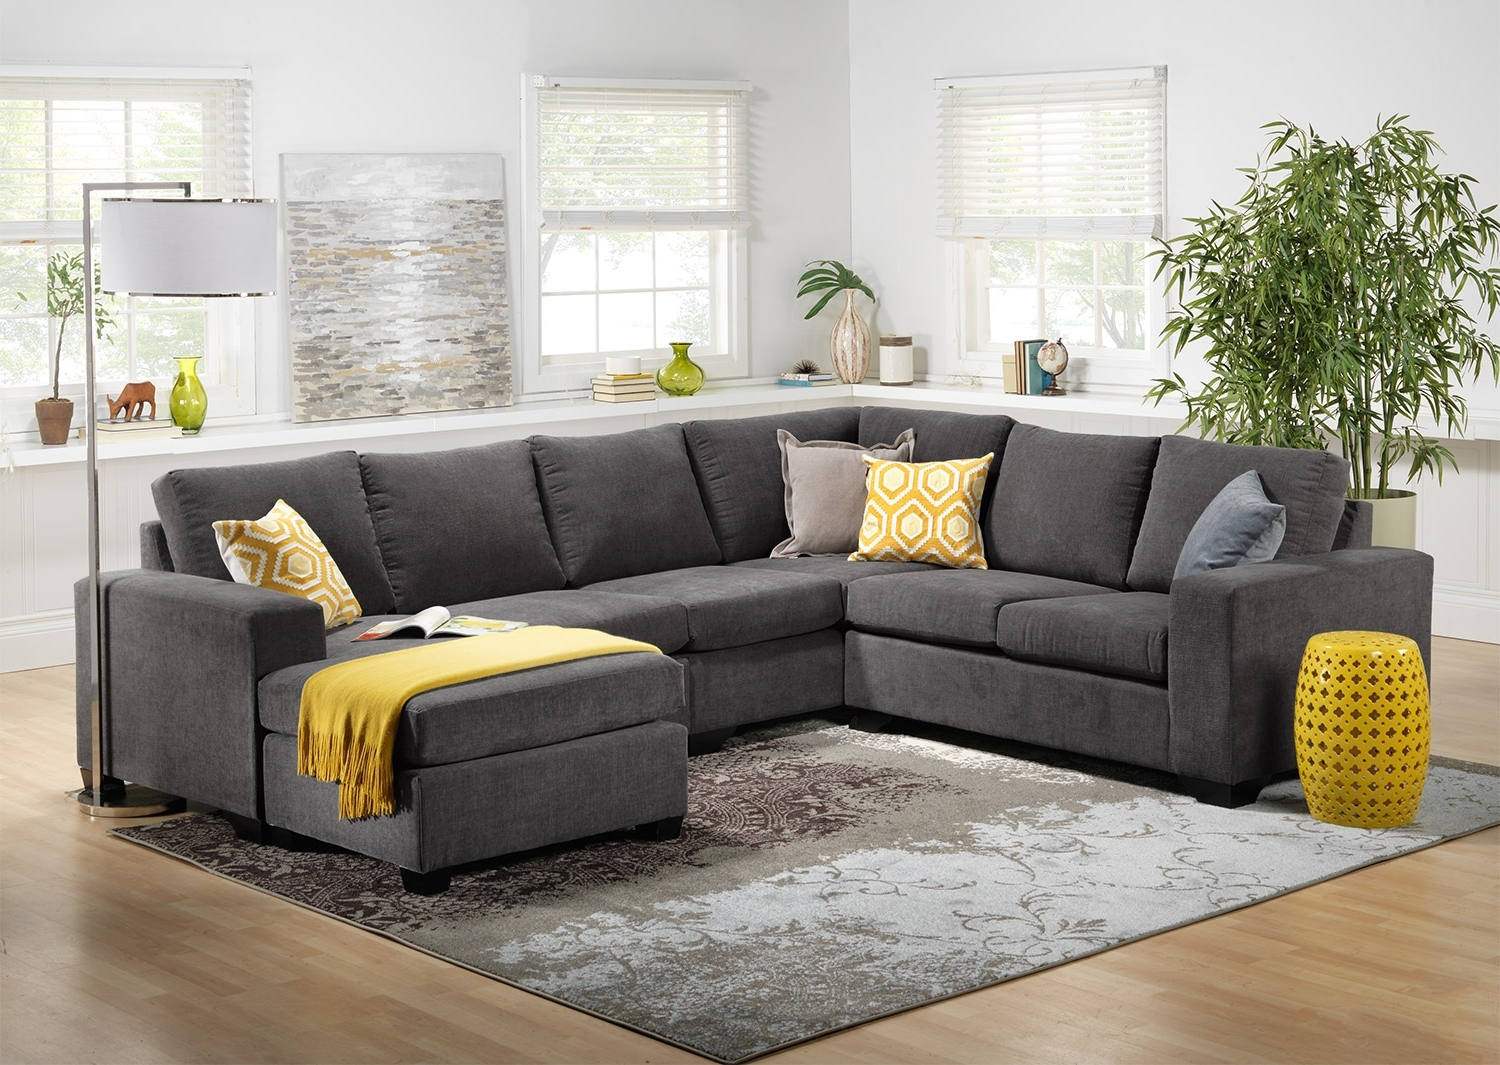 Living Room Design : Stacy Furniture Living Room Sectional Hickory In Most Current Hickory Nc Sectional Sofas (View 7 of 20)